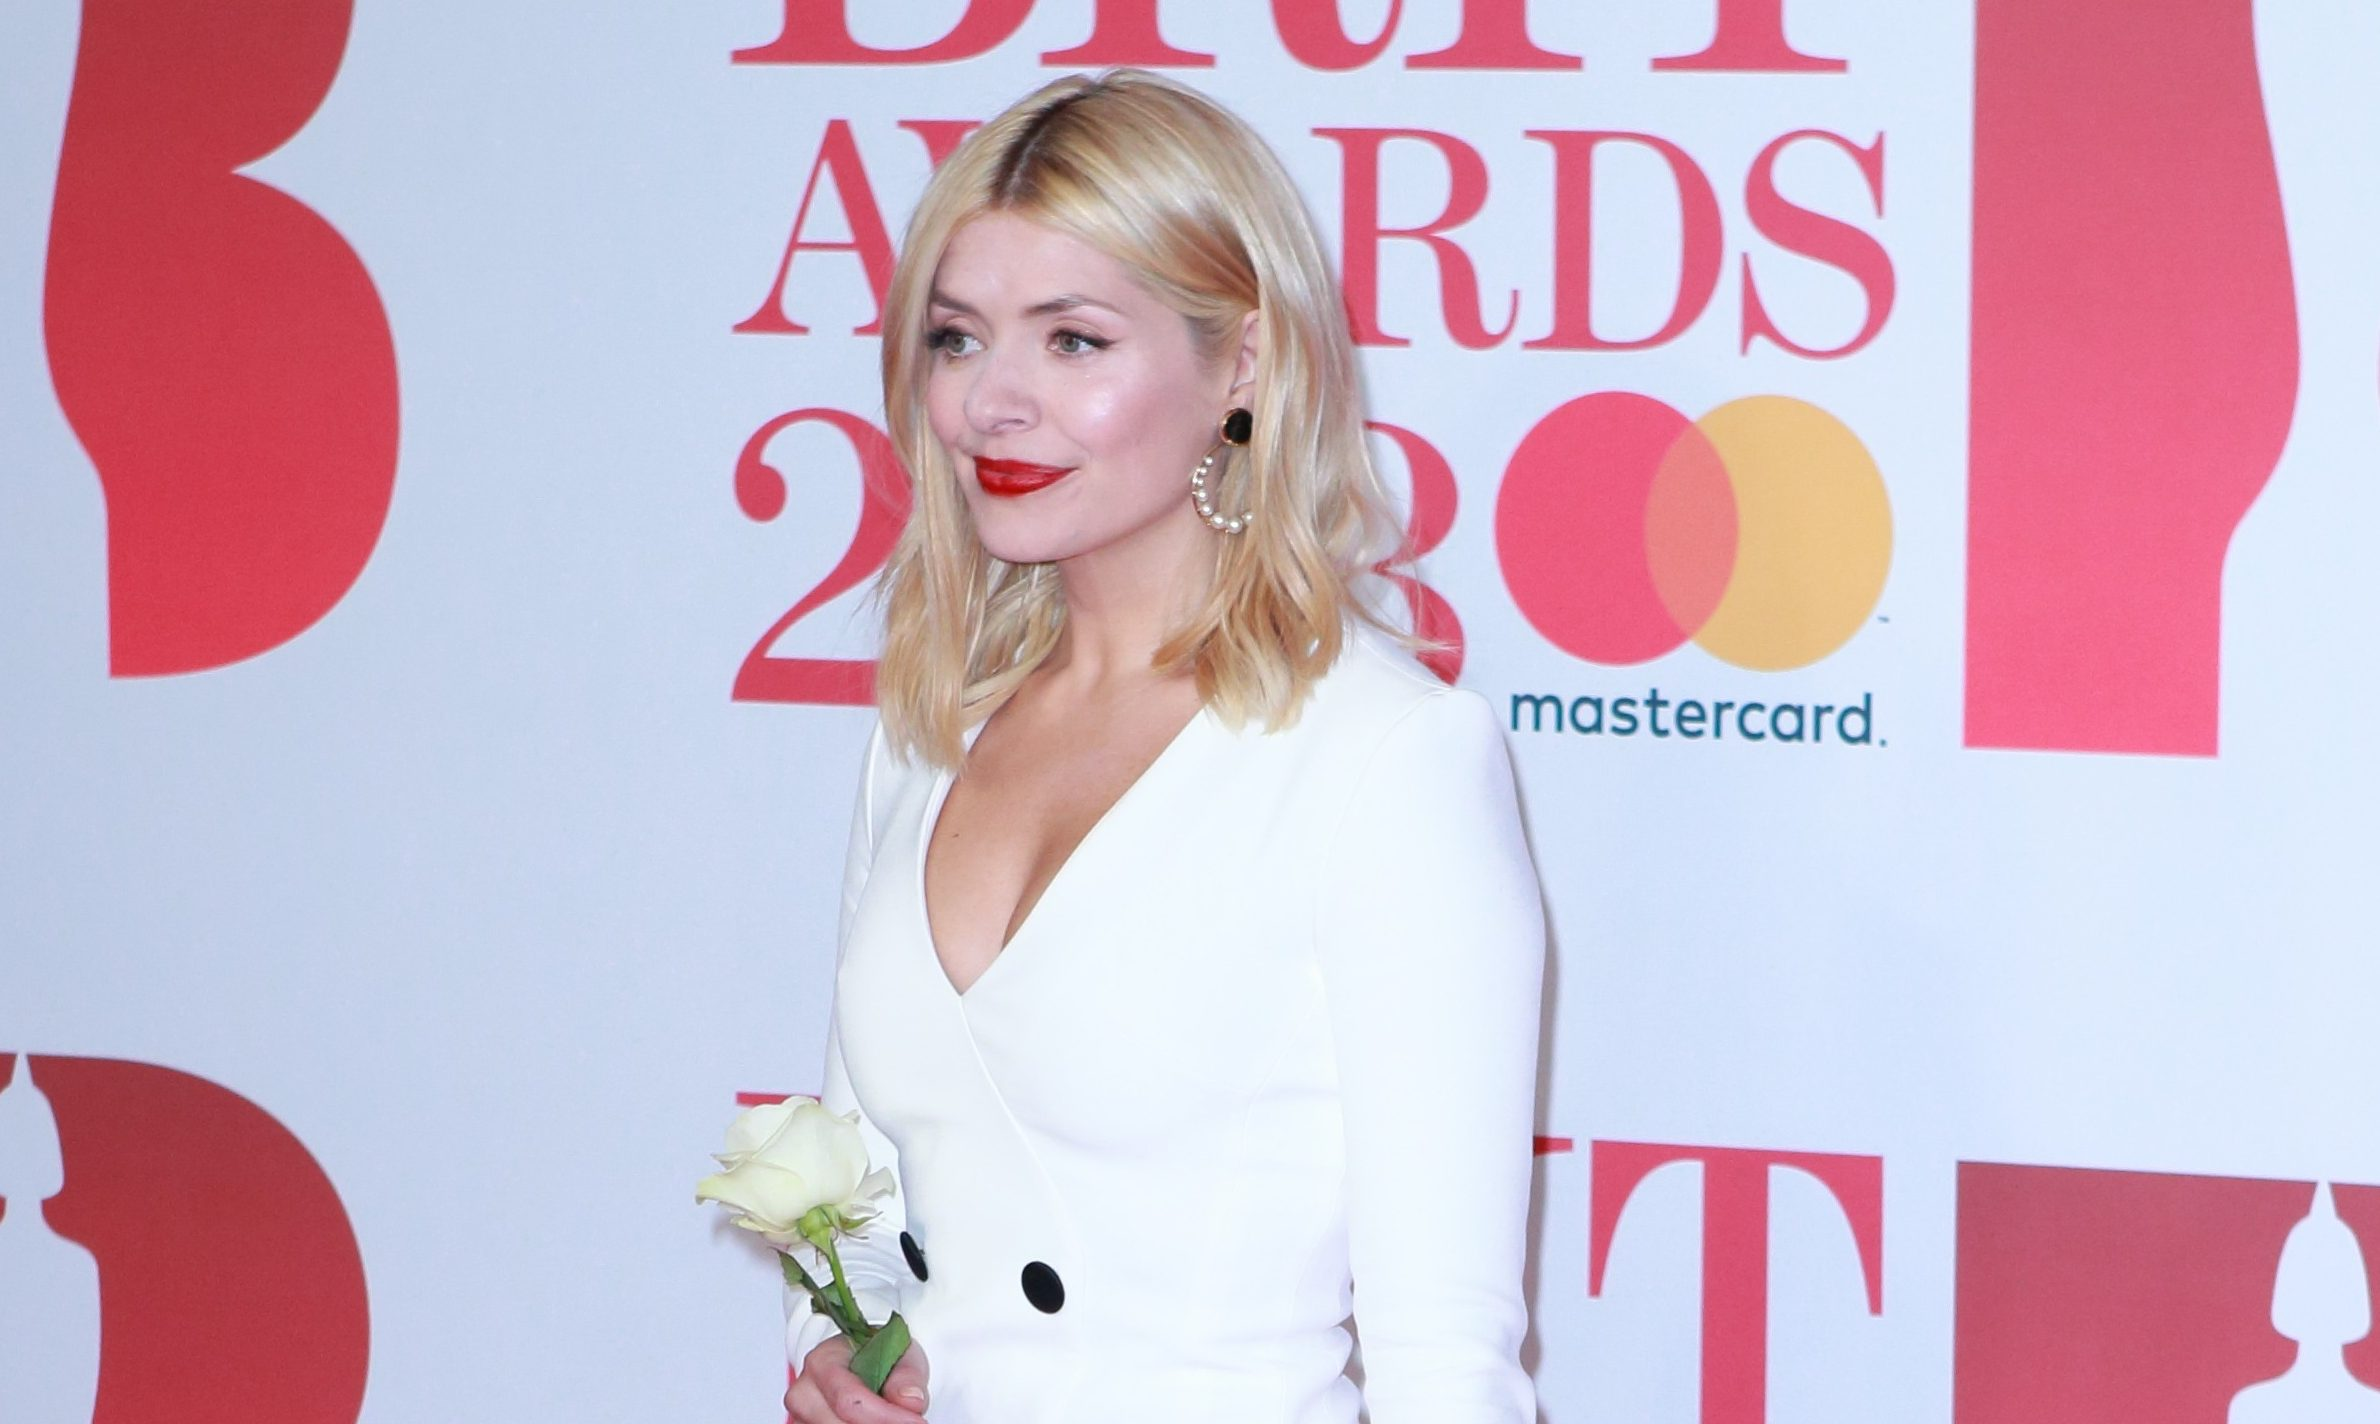 Holly Willoughby attacks photographers for up skirt shots